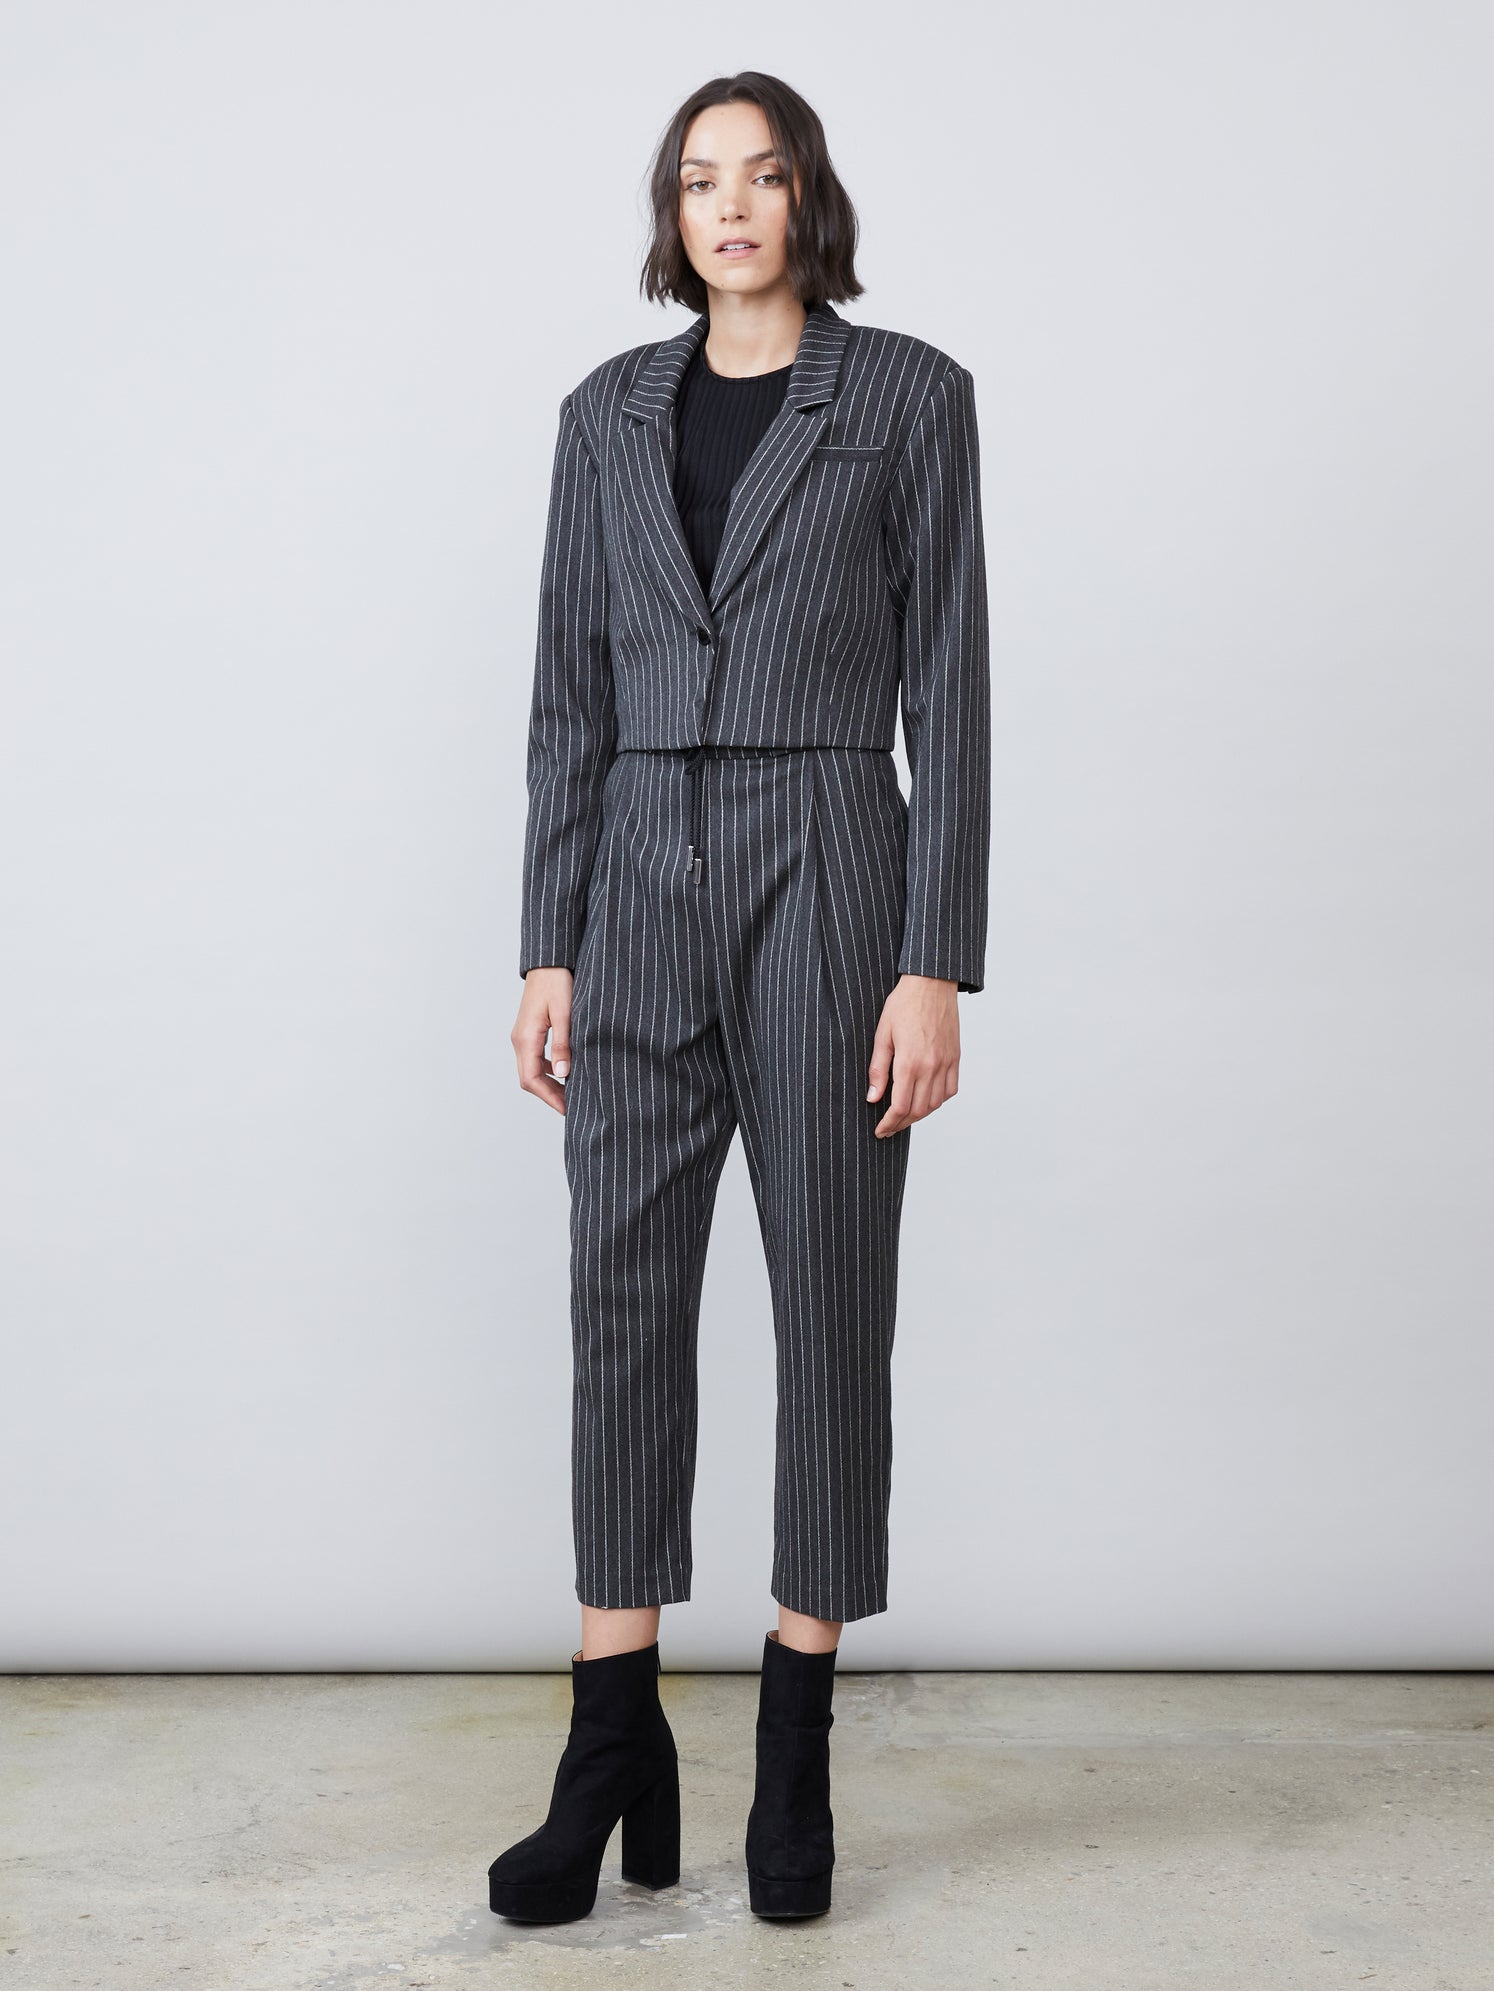 Pinstripe cropped square shoulder notched lapel button cuff blazer